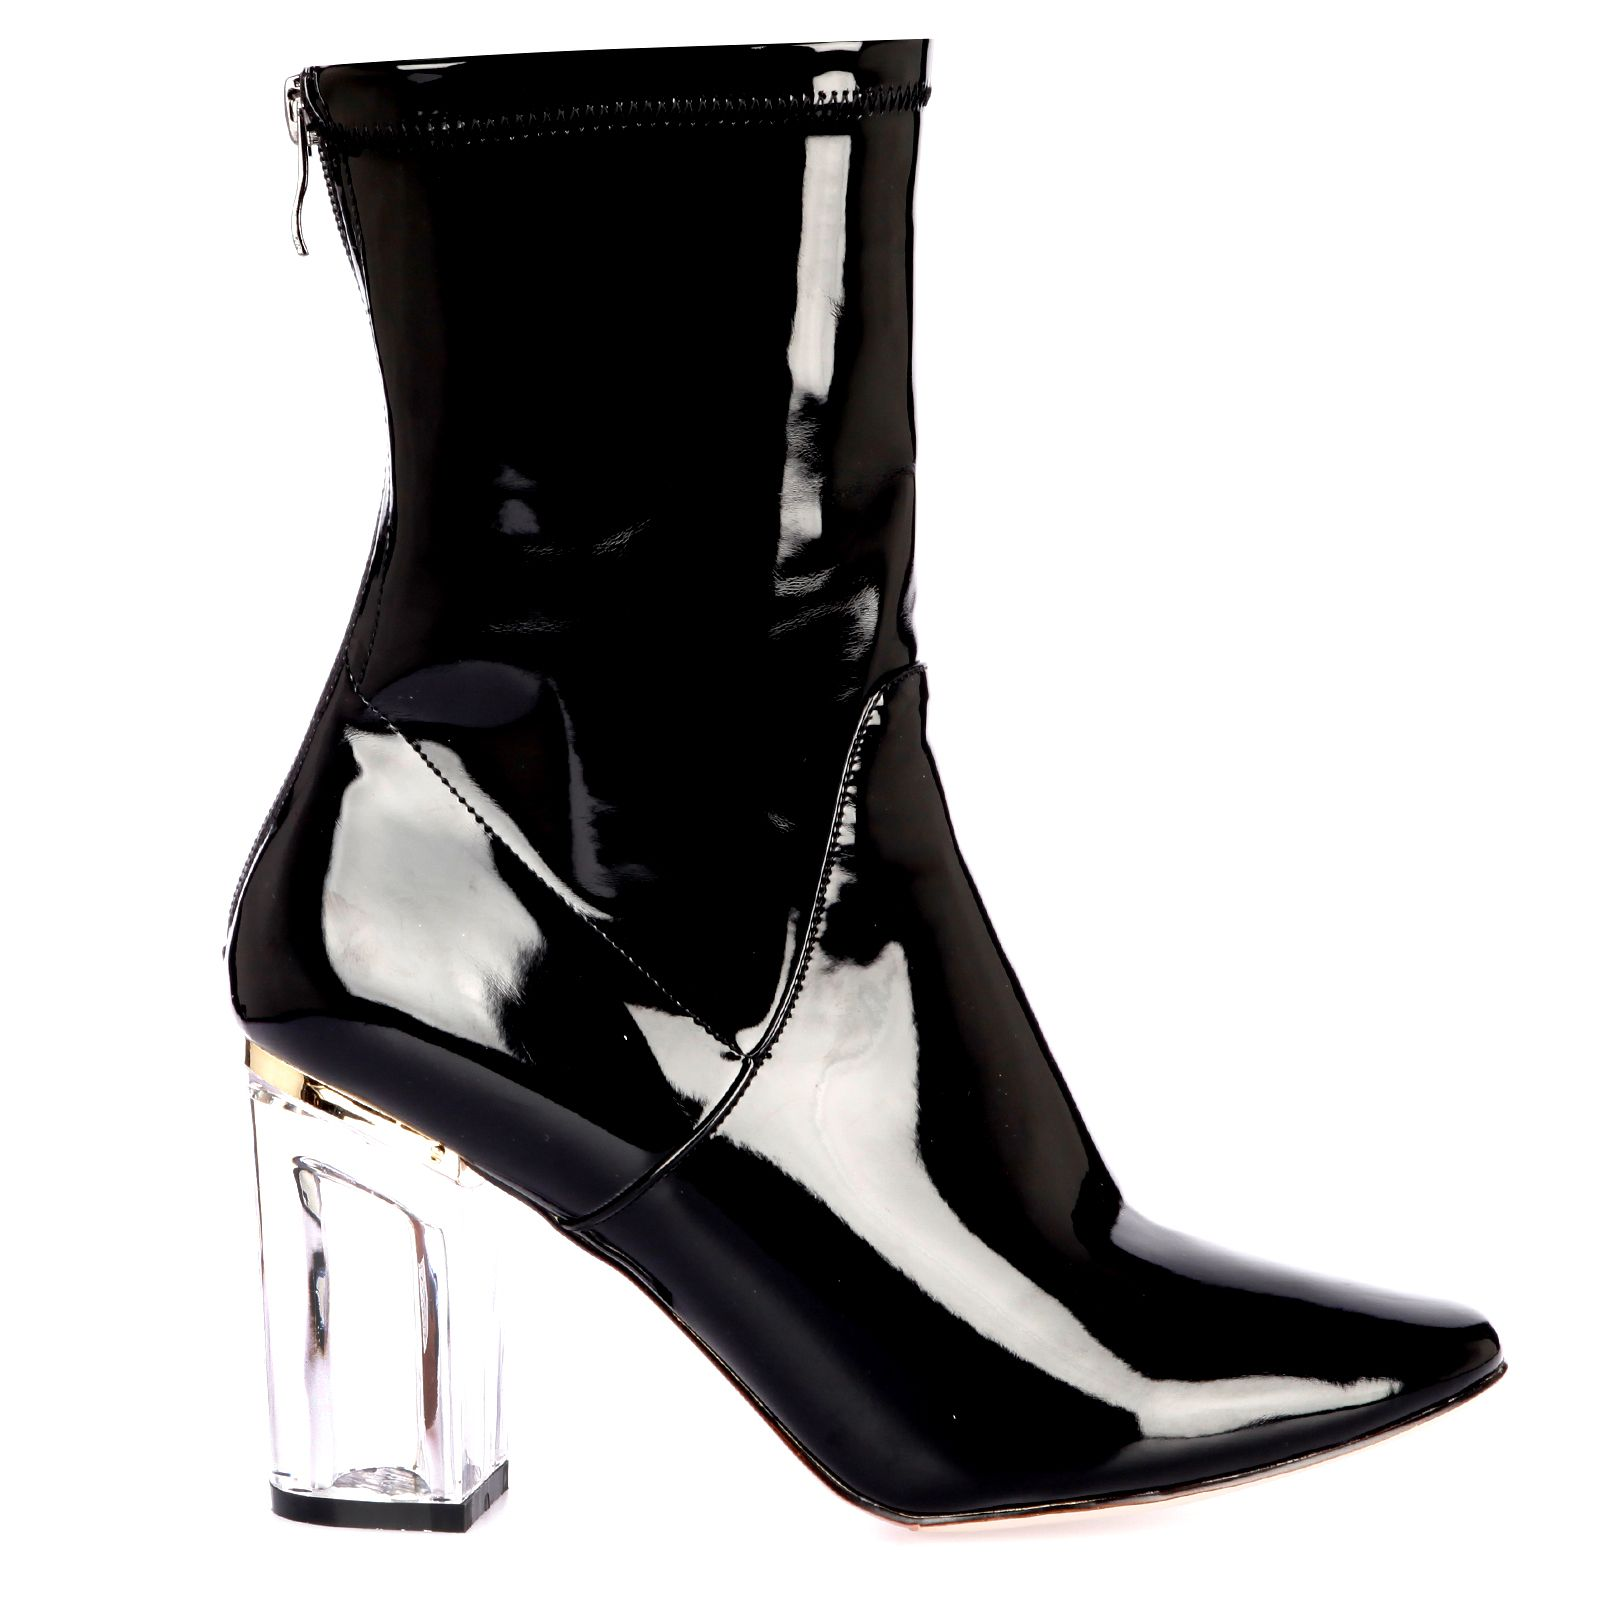 543b0cfb3 Chloe Ankle Boots In Black Patent pvc shiny party | beautiful thing ...